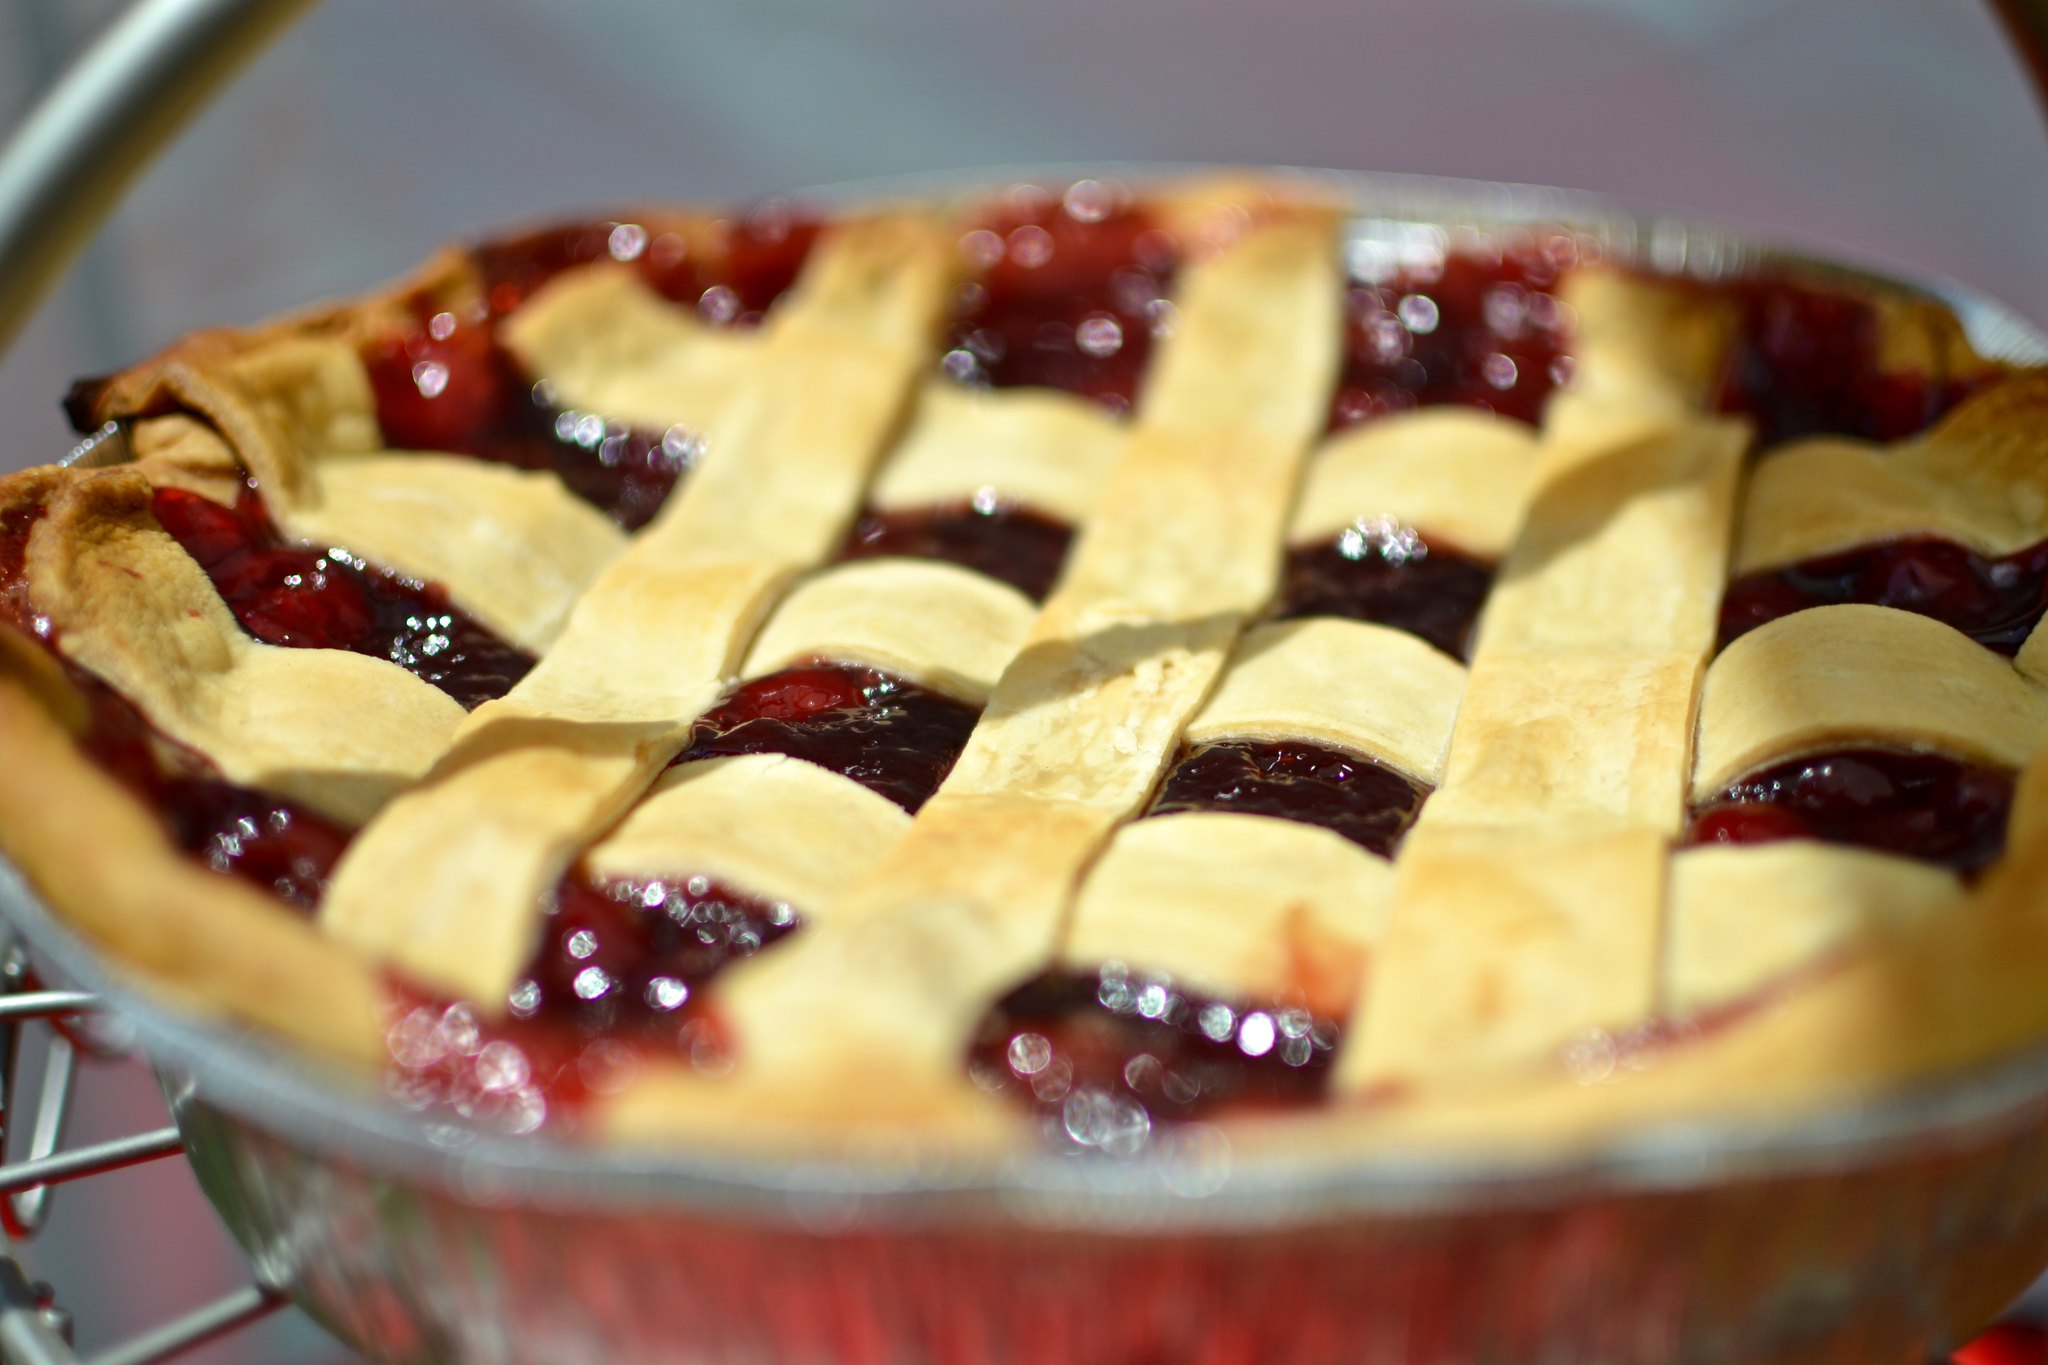 Feds Announce They Will Stop Regulating the Number of Cherries in Cherry Pies